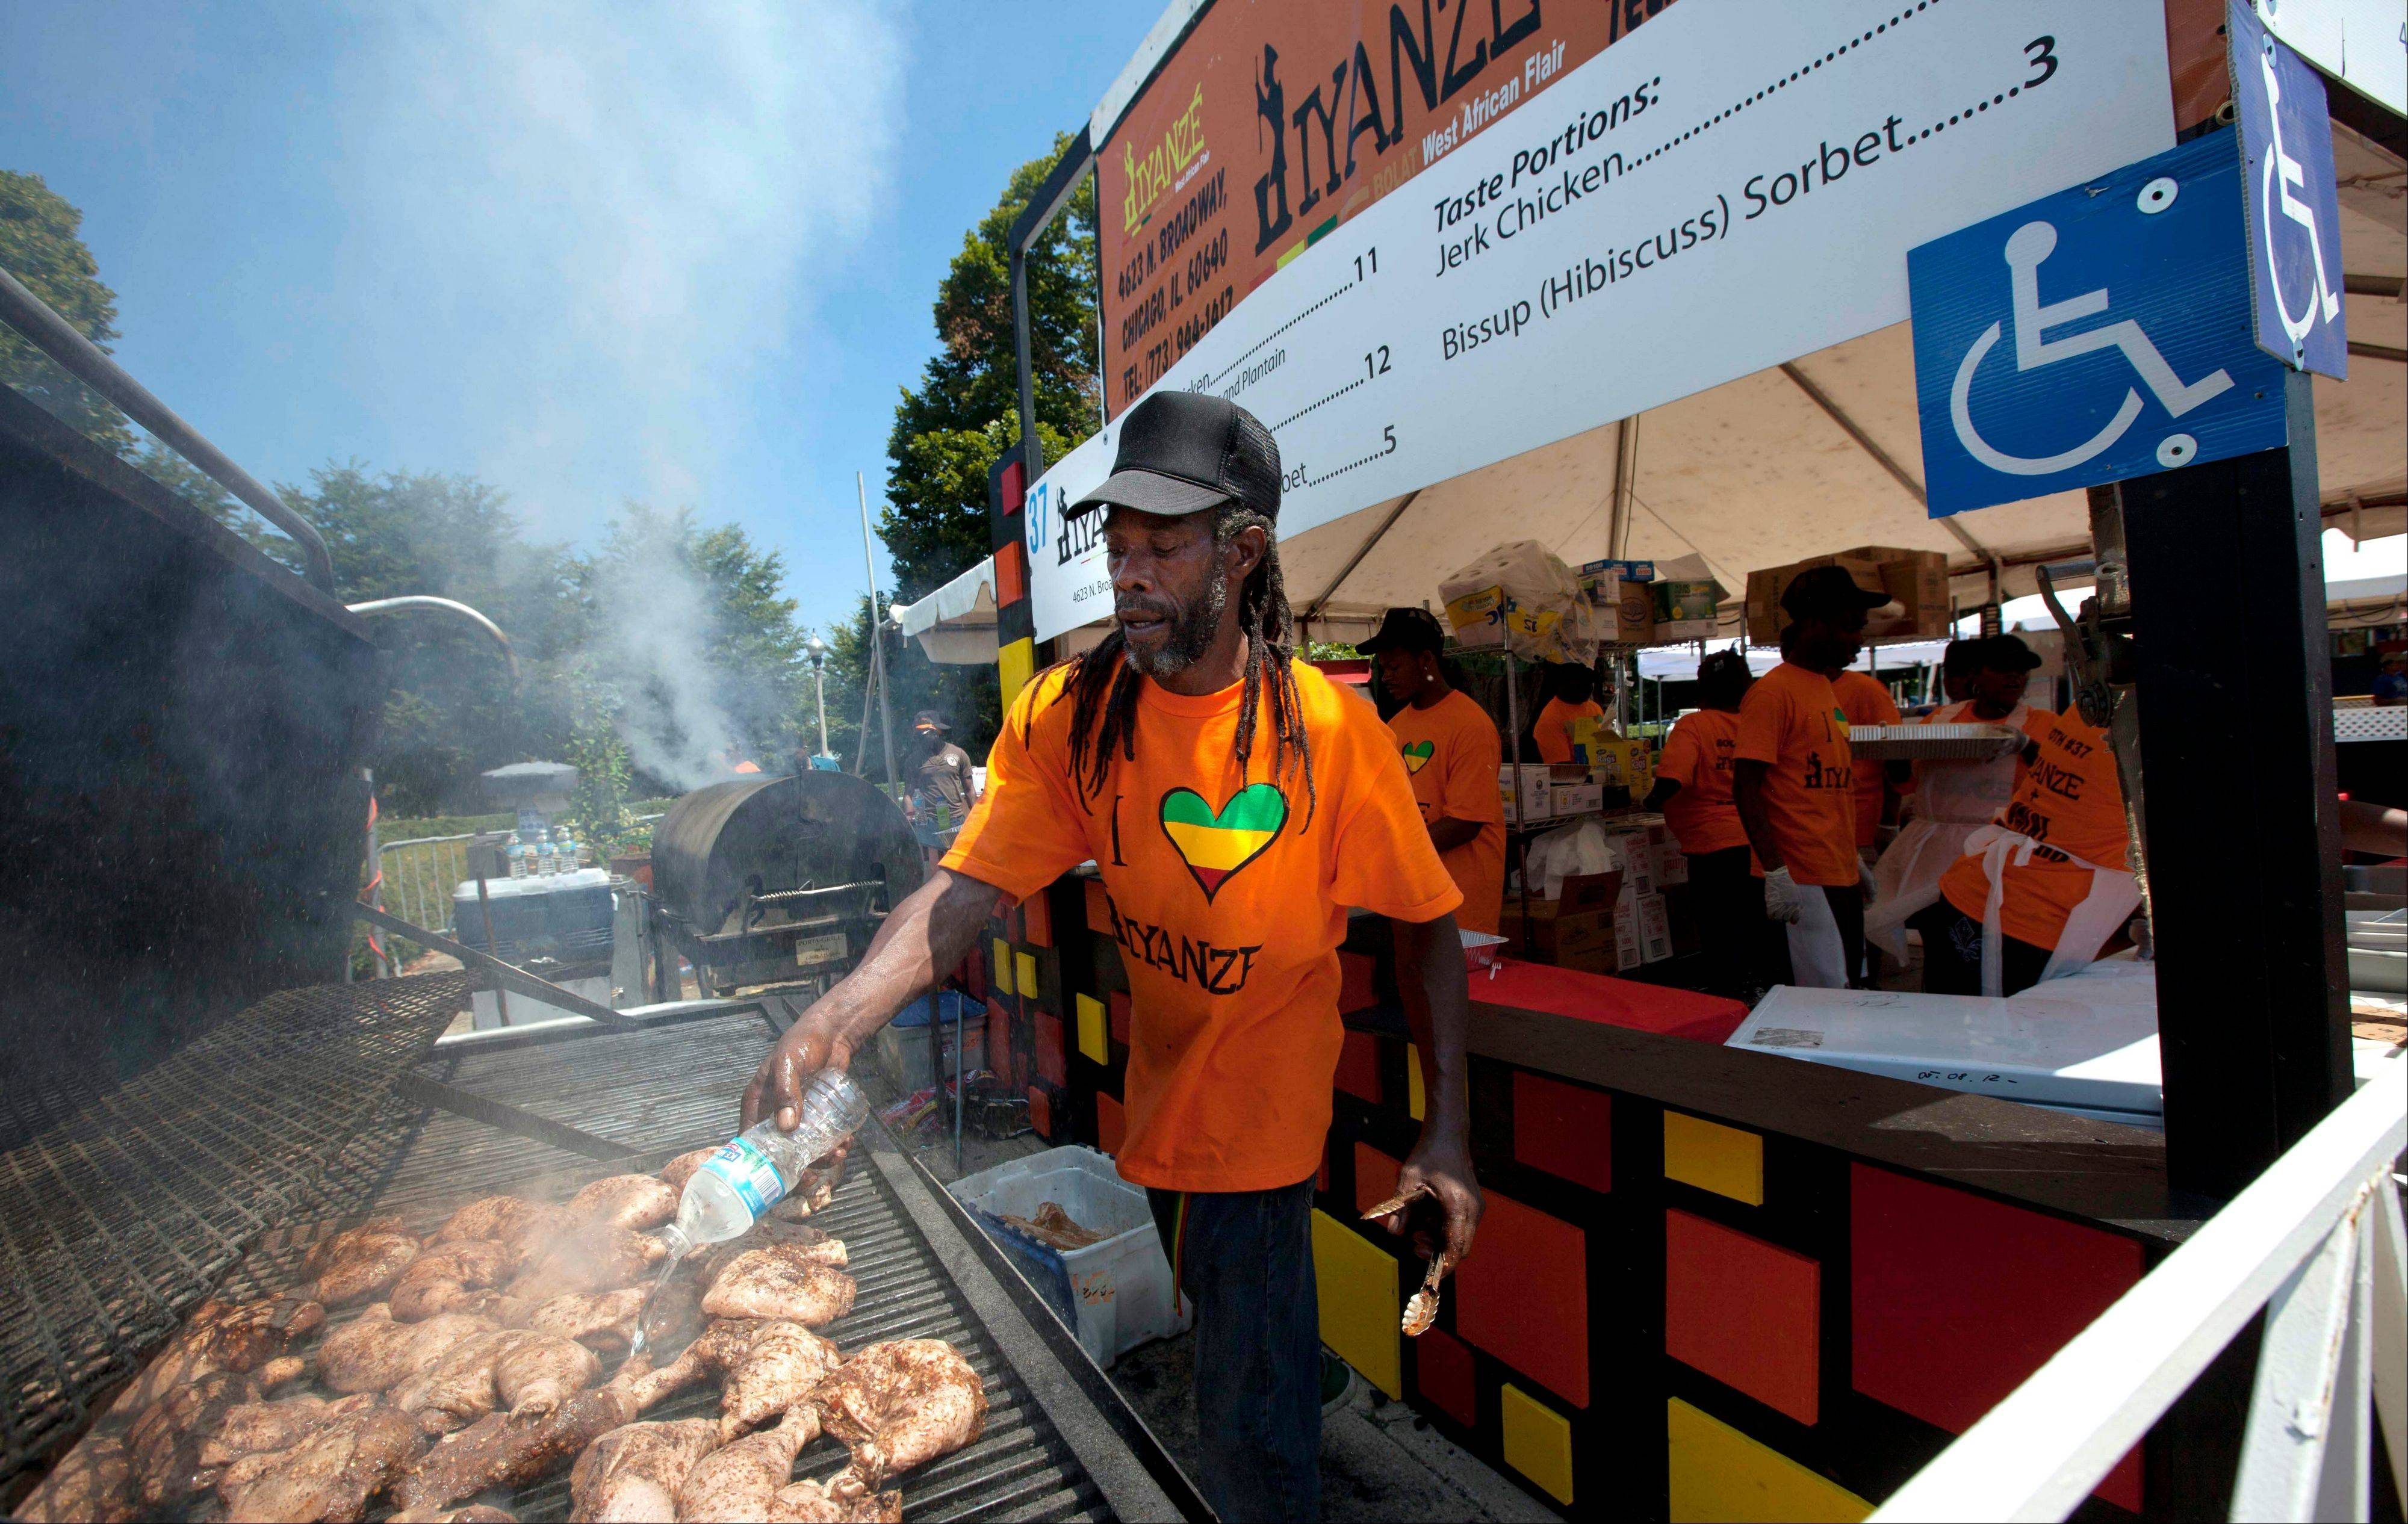 A vendor barbecues chicken at the Taste of Chicago last July. This year�s festival runs July 10-14.